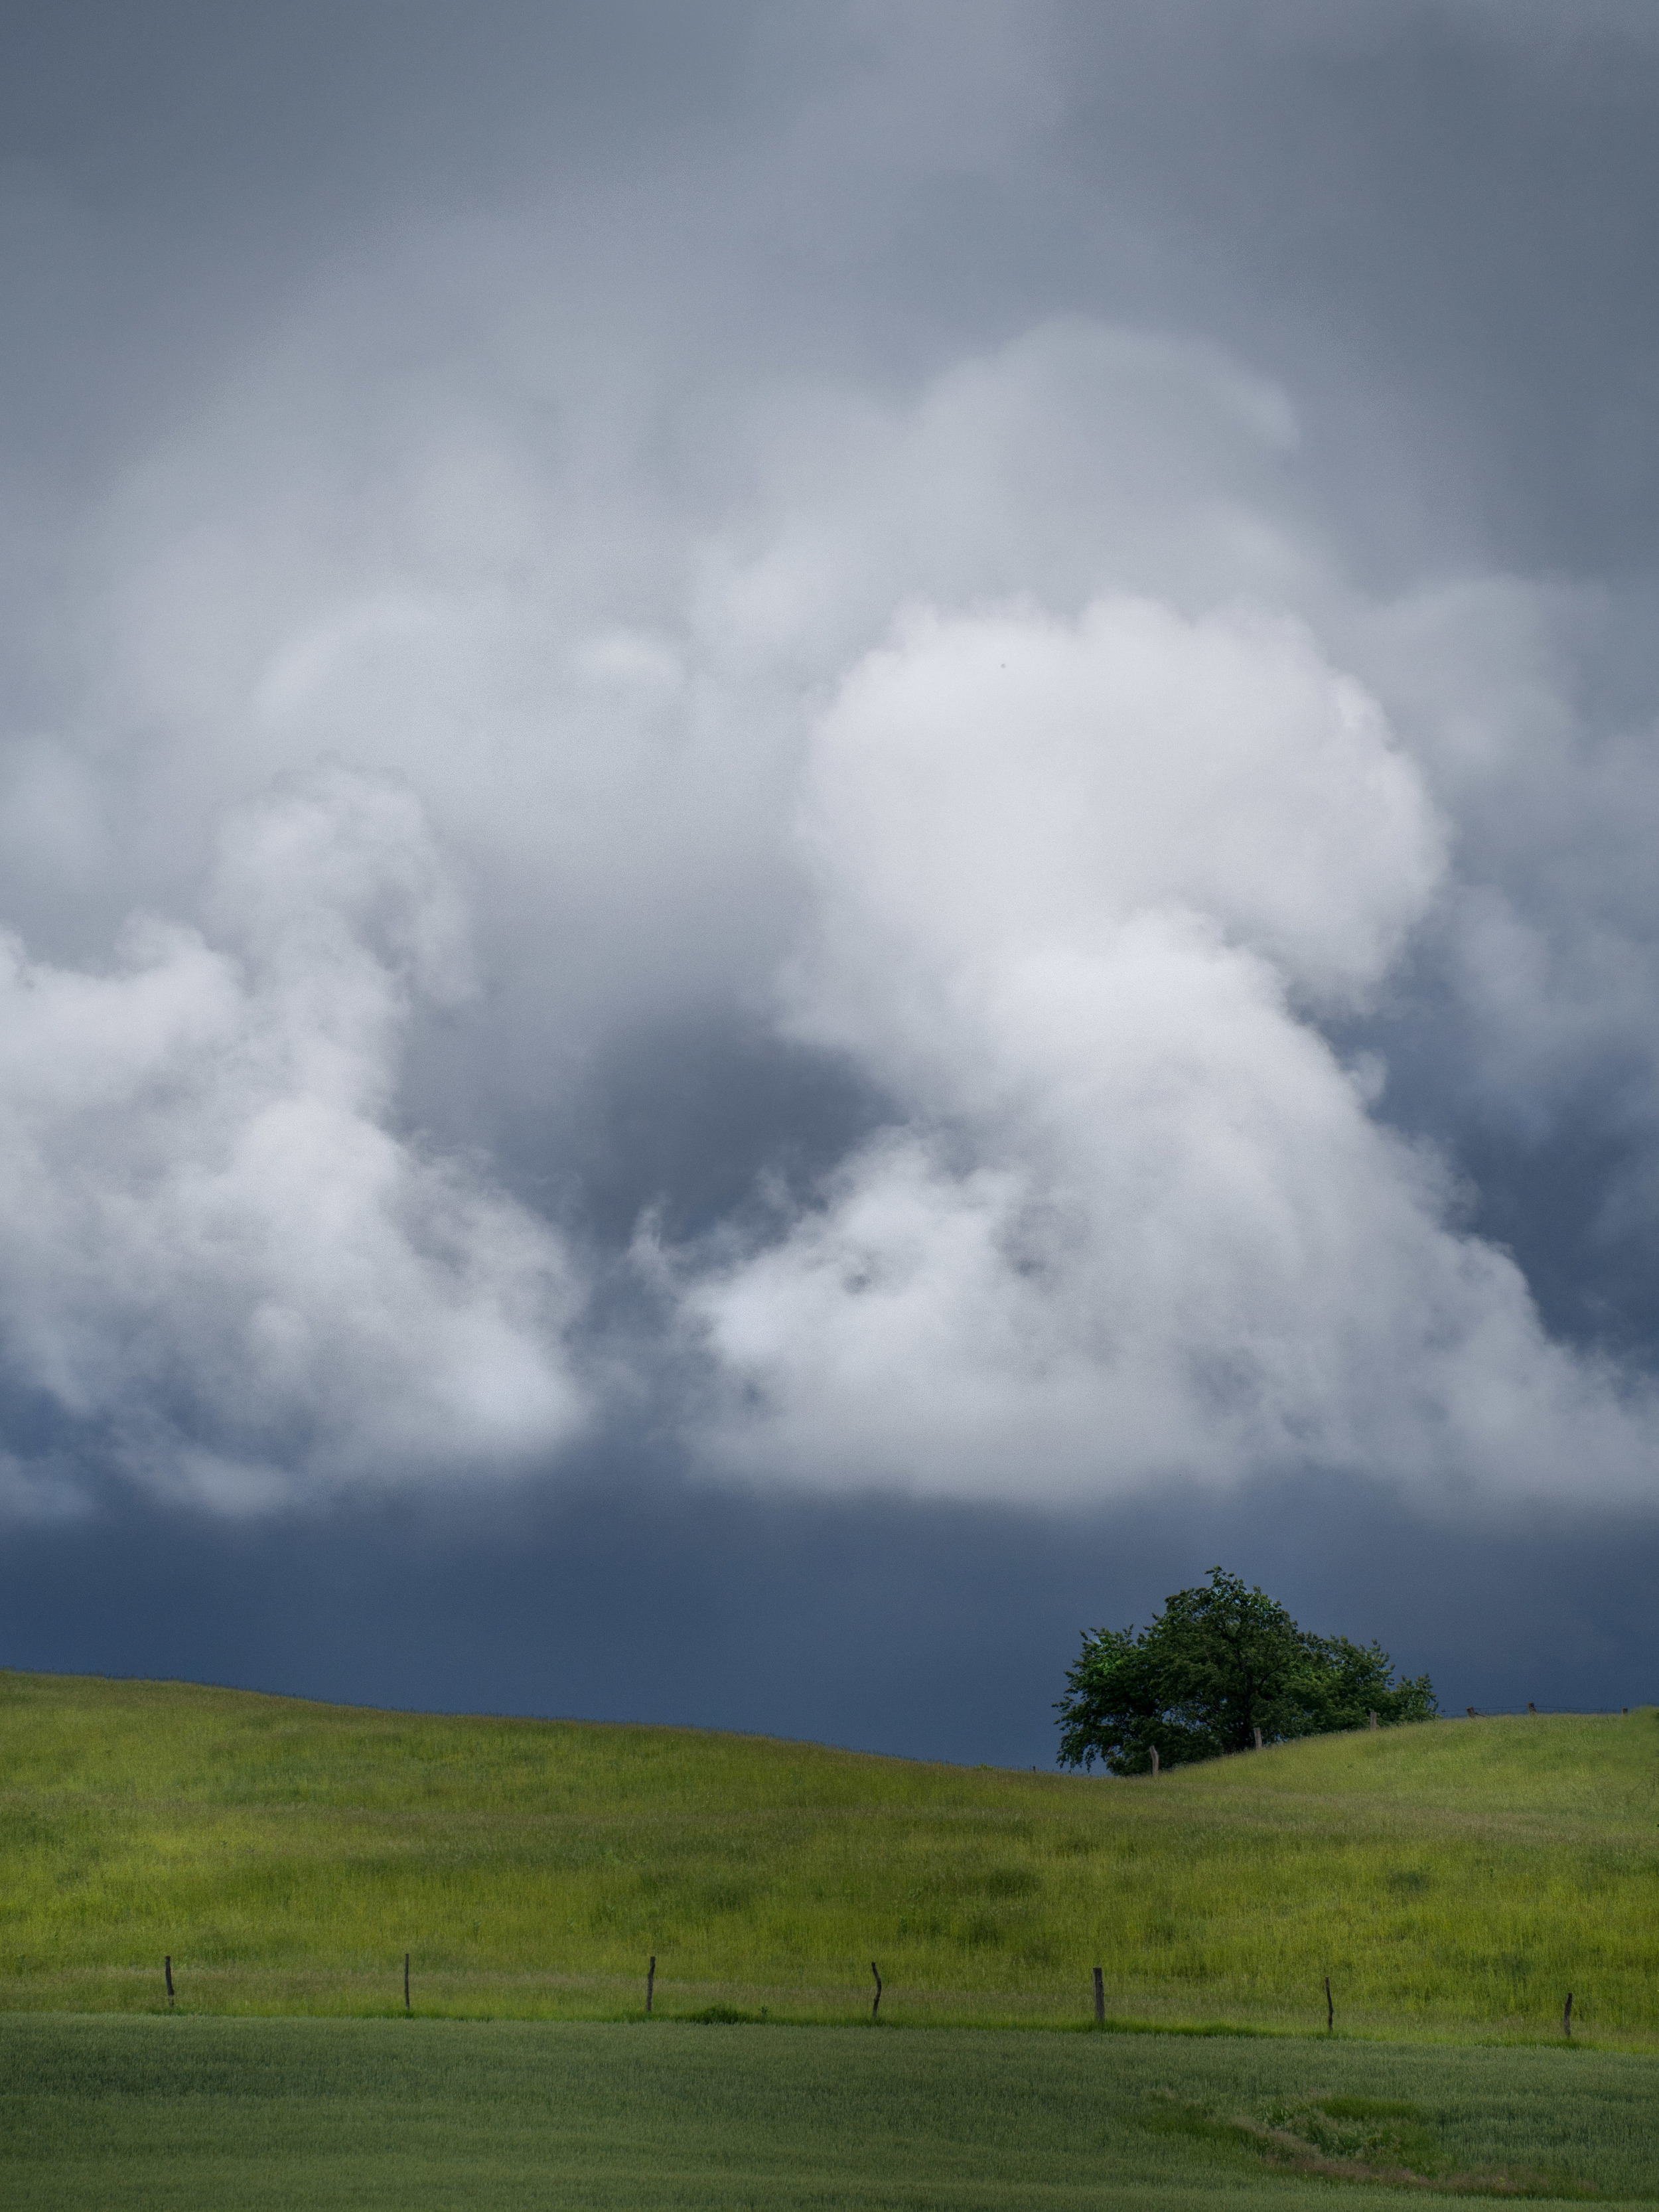 Dark skies,white clouds, and lush green countryside make for a contrast explosion.